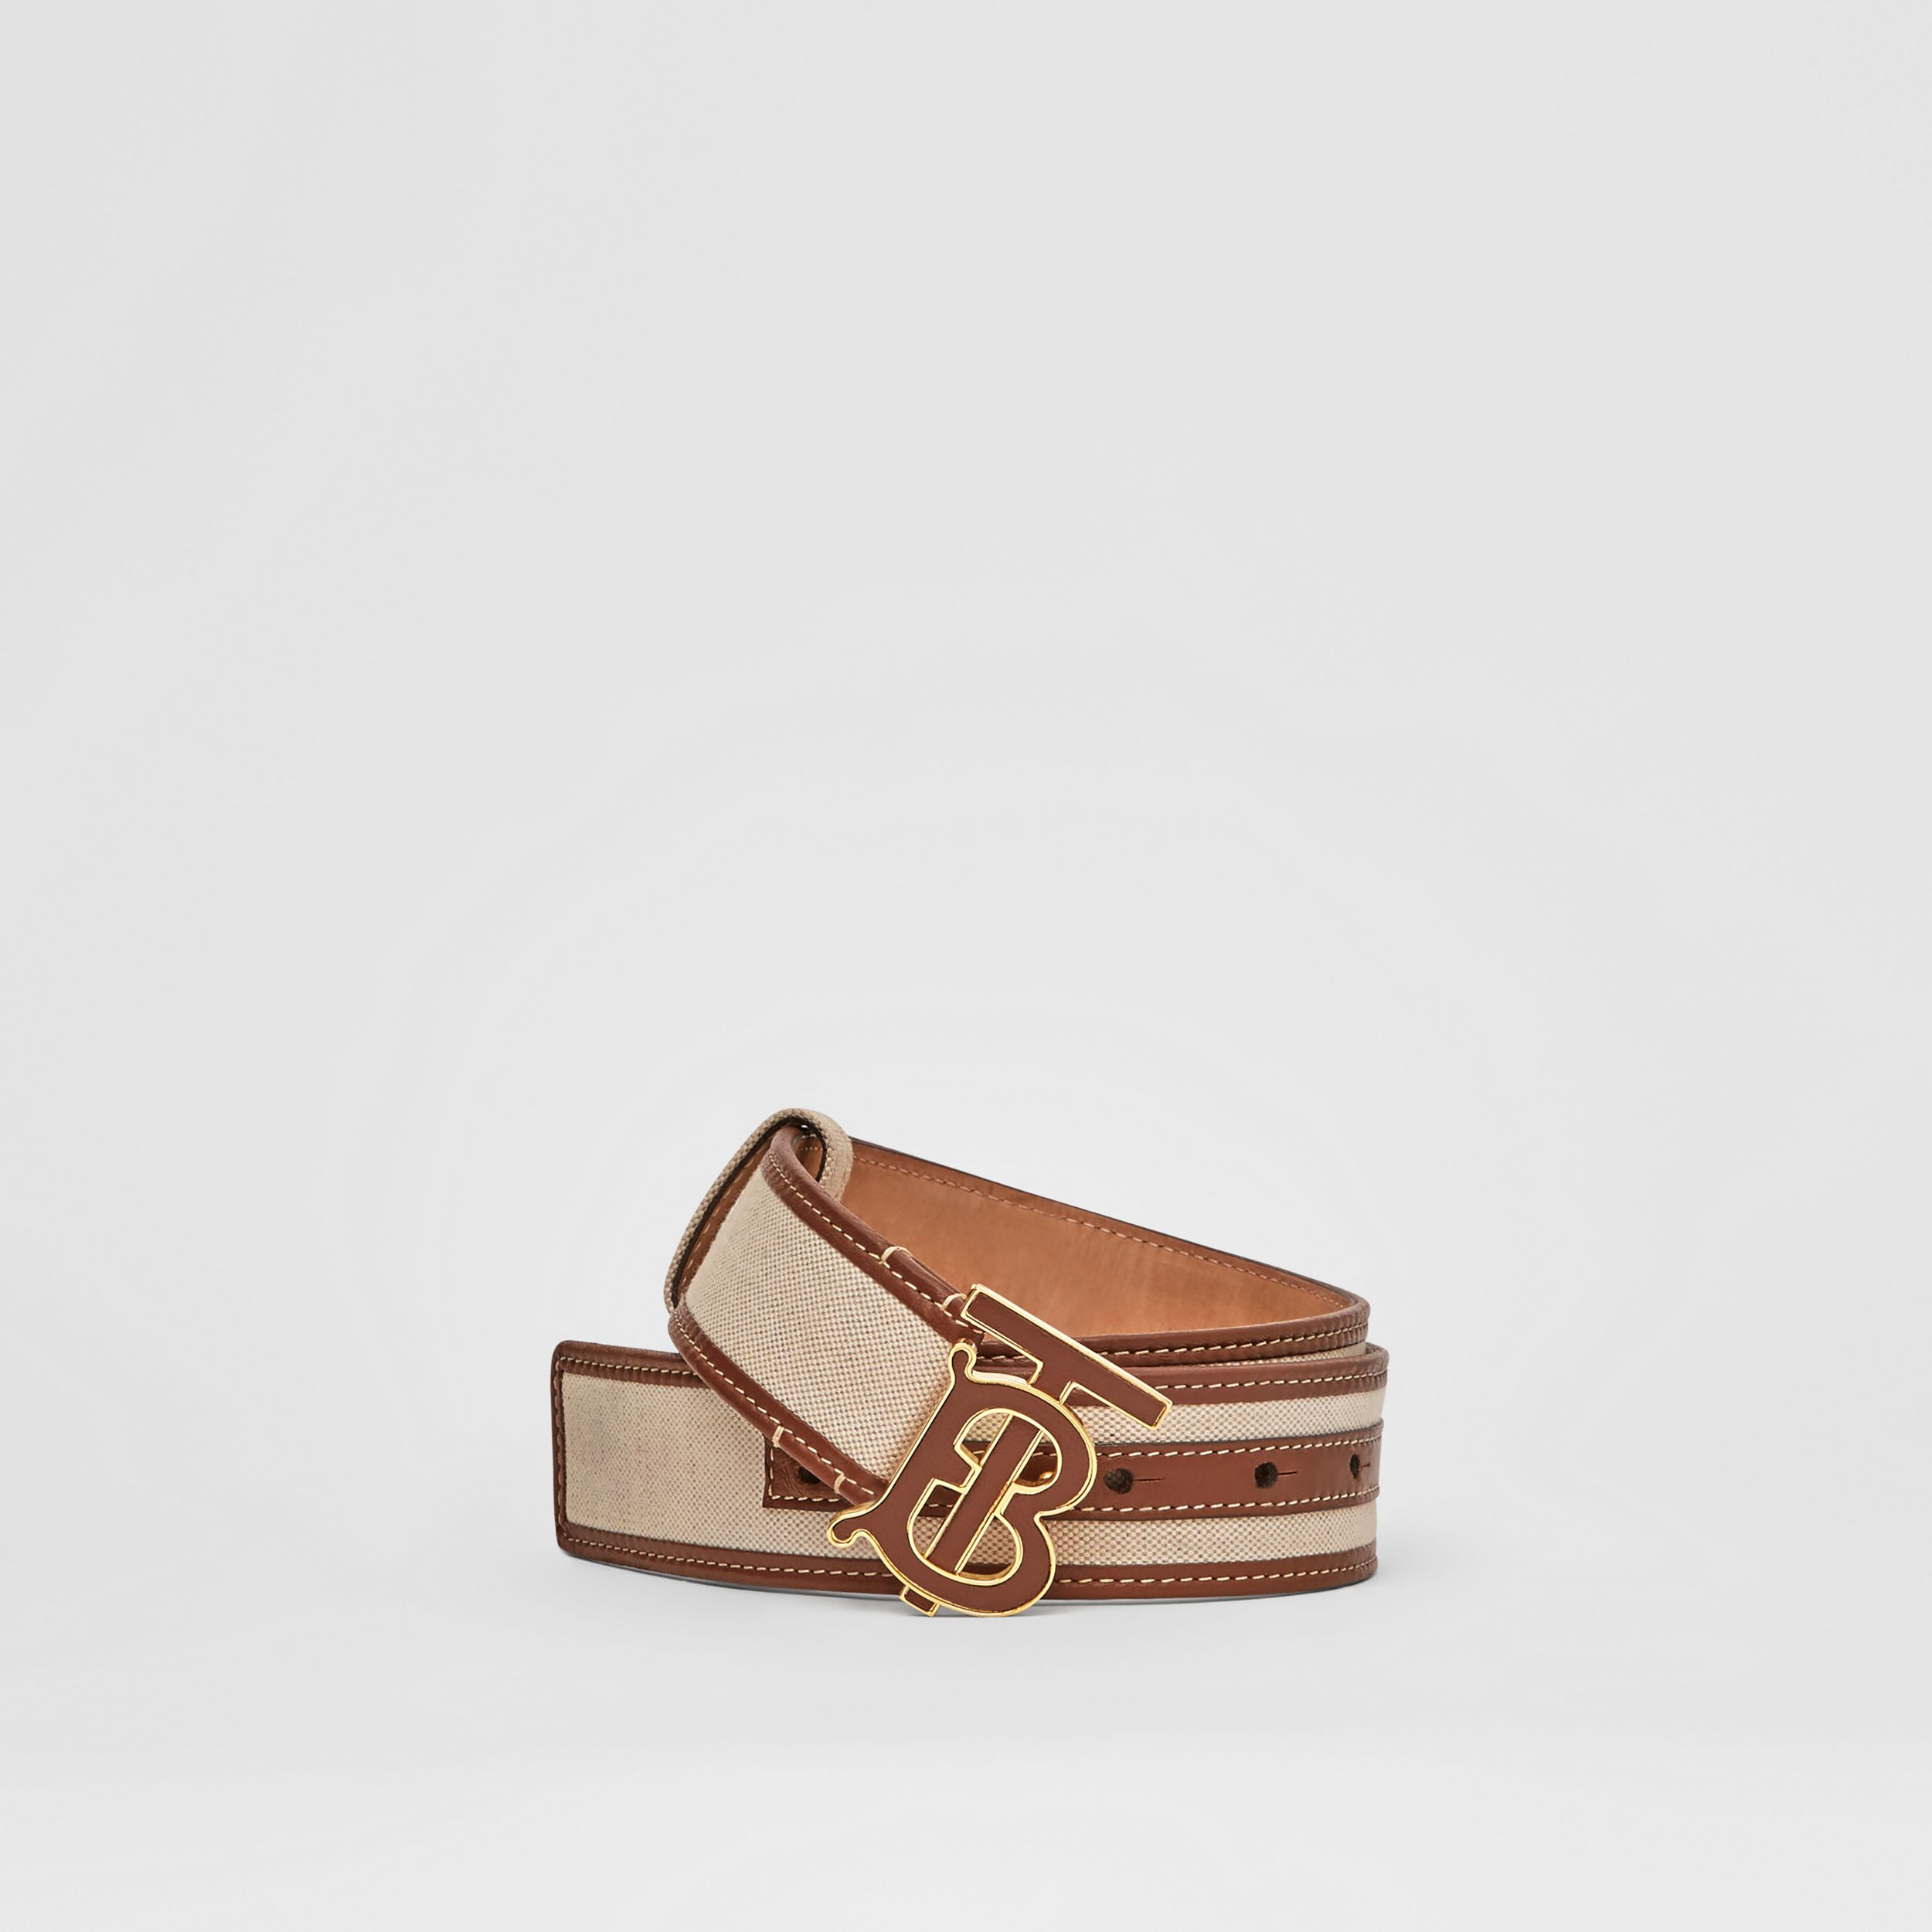 Monogram Motif Canvas and Leather Belt in Natural - Women | Burberry United Kingdom - 1